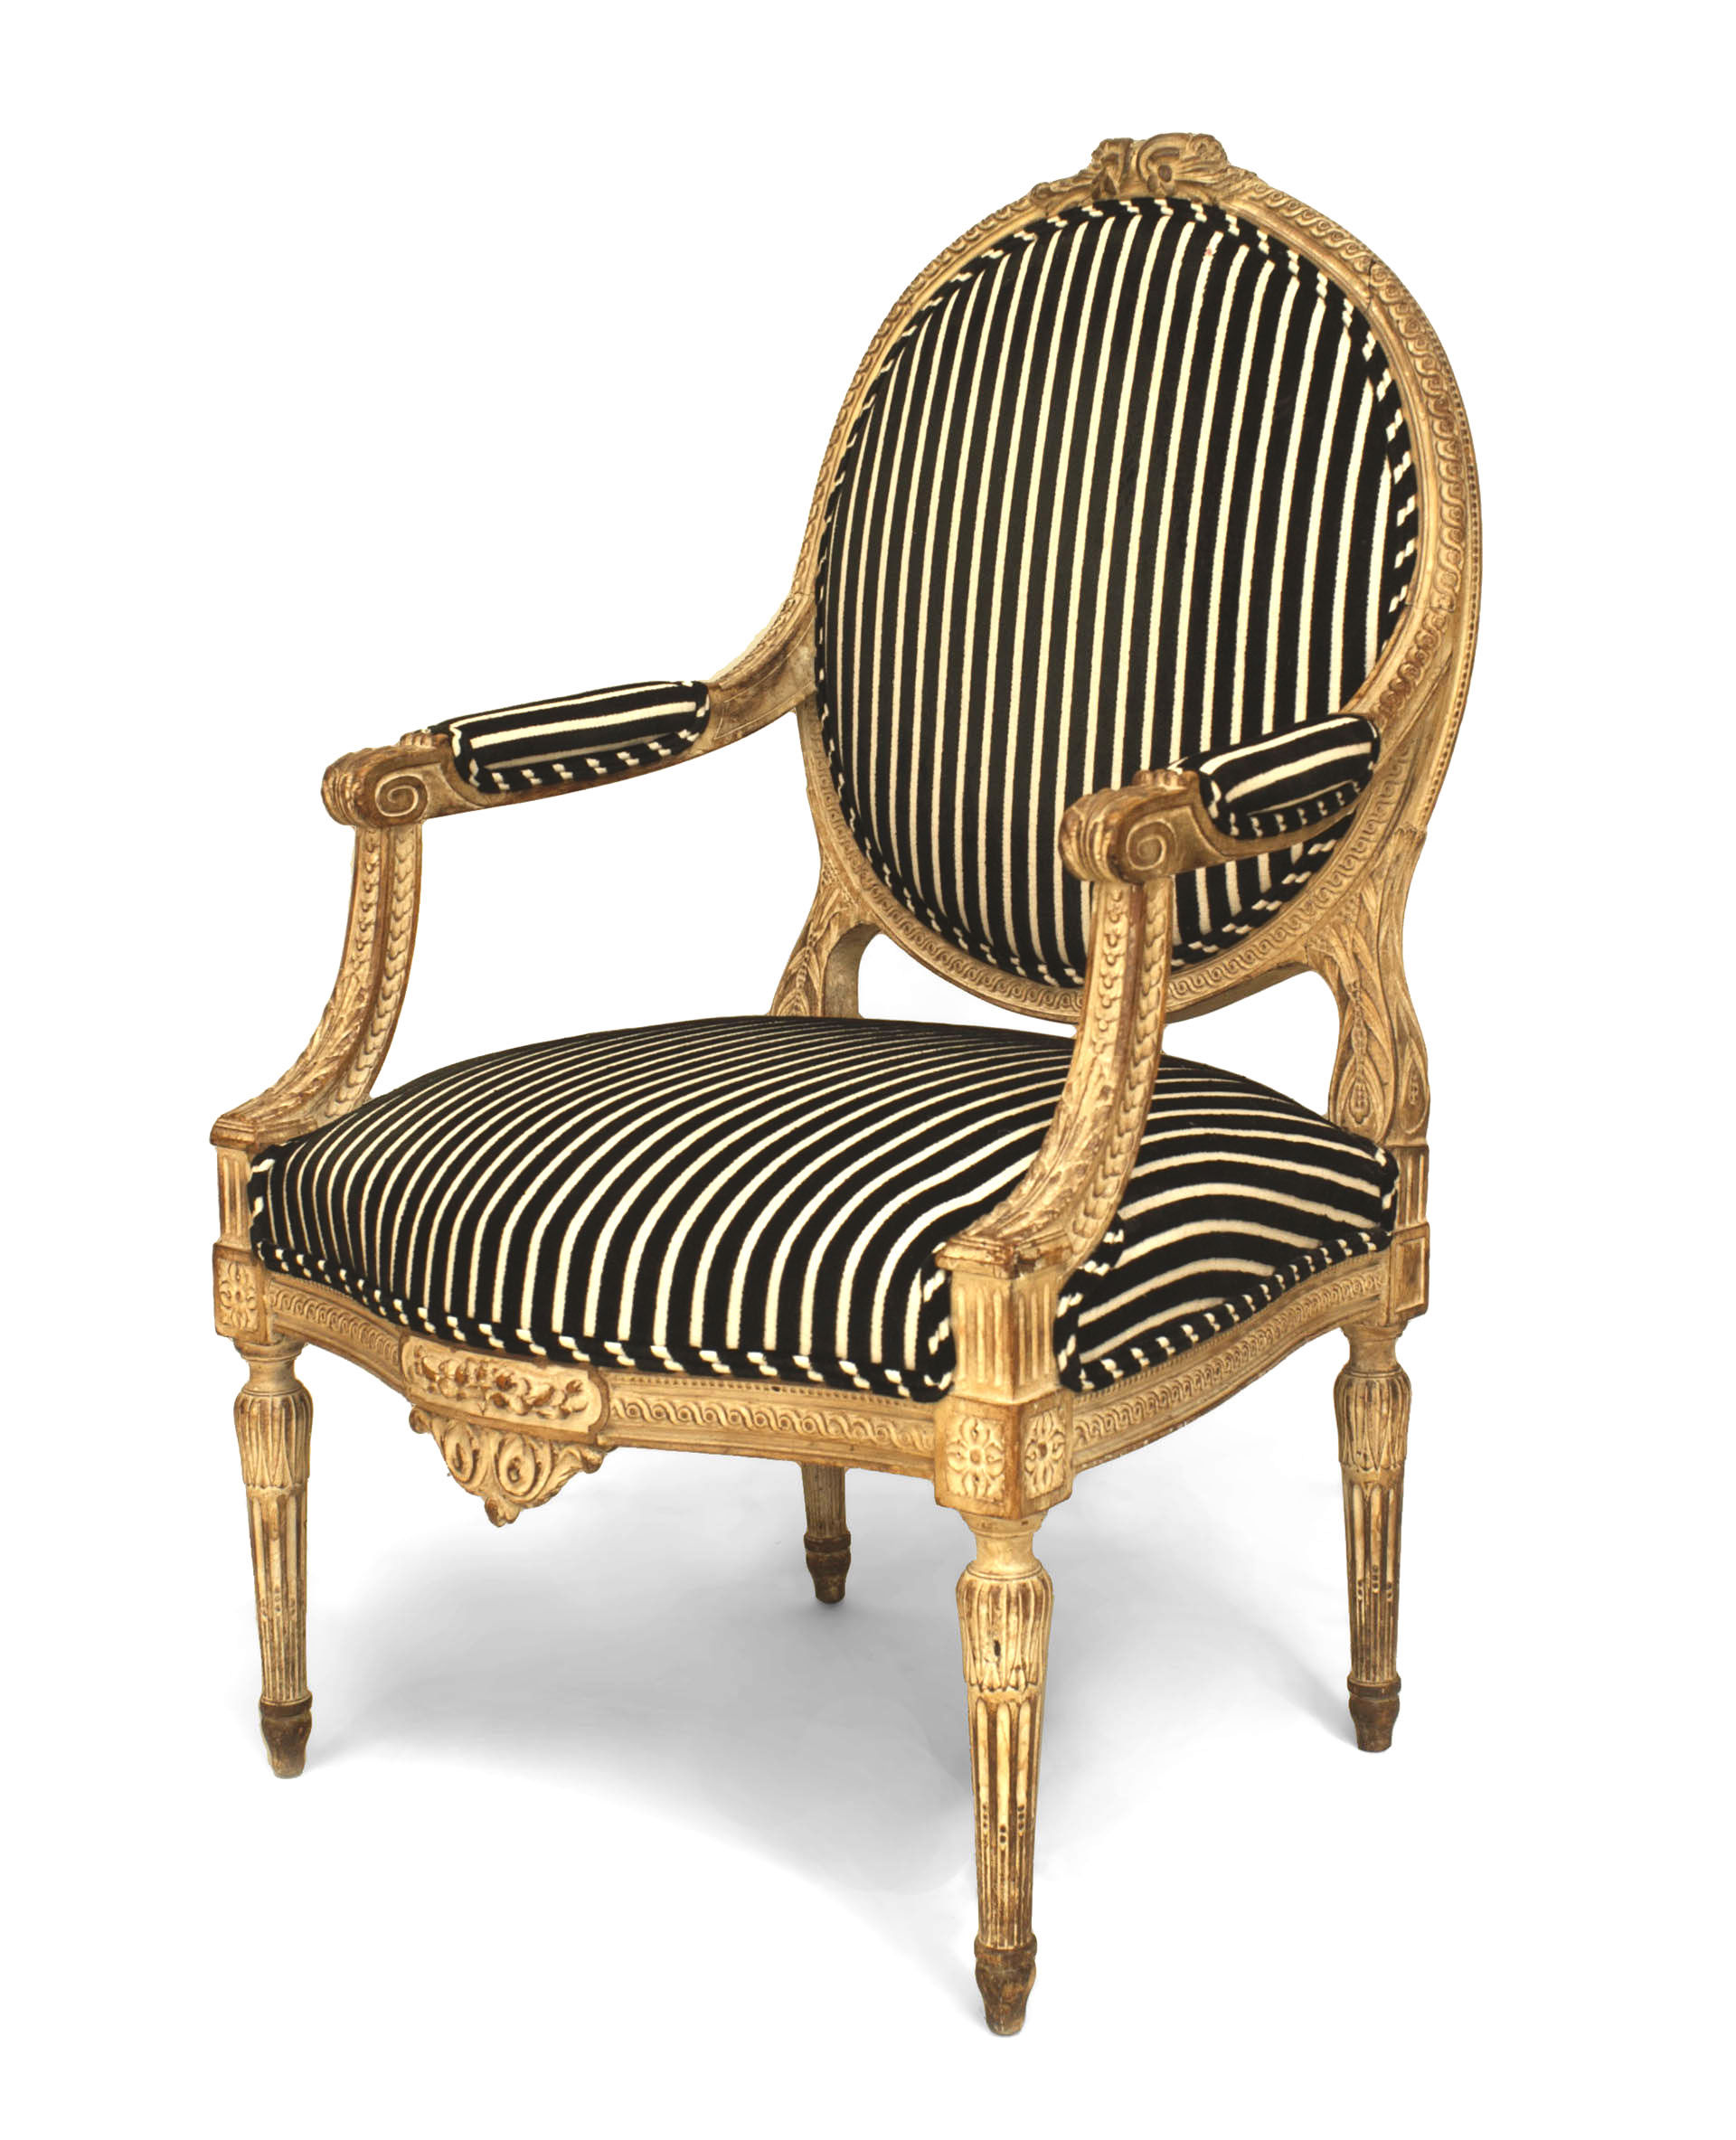 Marvelous French Louis Xvi Striped Arm Chair Newel Caraccident5 Cool Chair Designs And Ideas Caraccident5Info